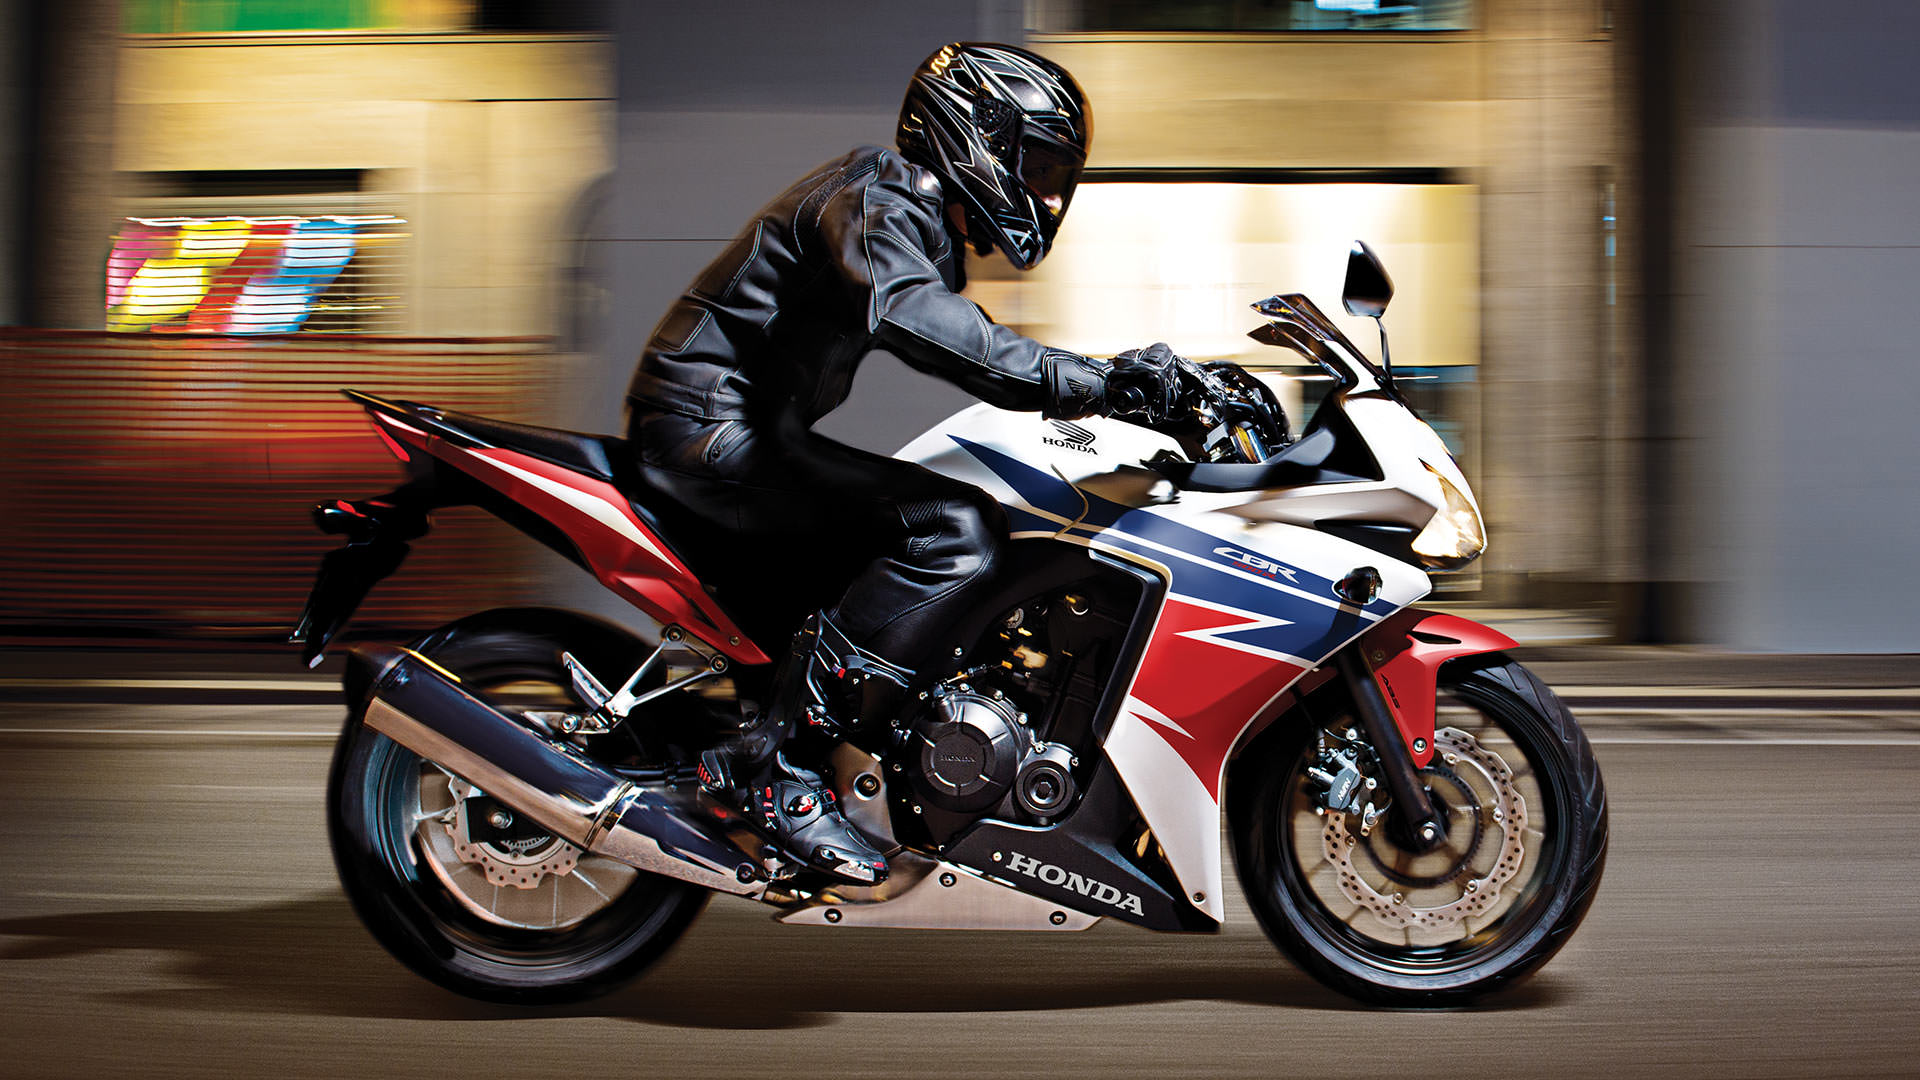 2013 Honda CBR500R ABS Review / Specs / Pictures & Videos ...Honda Superbike 2013 Wallpaper